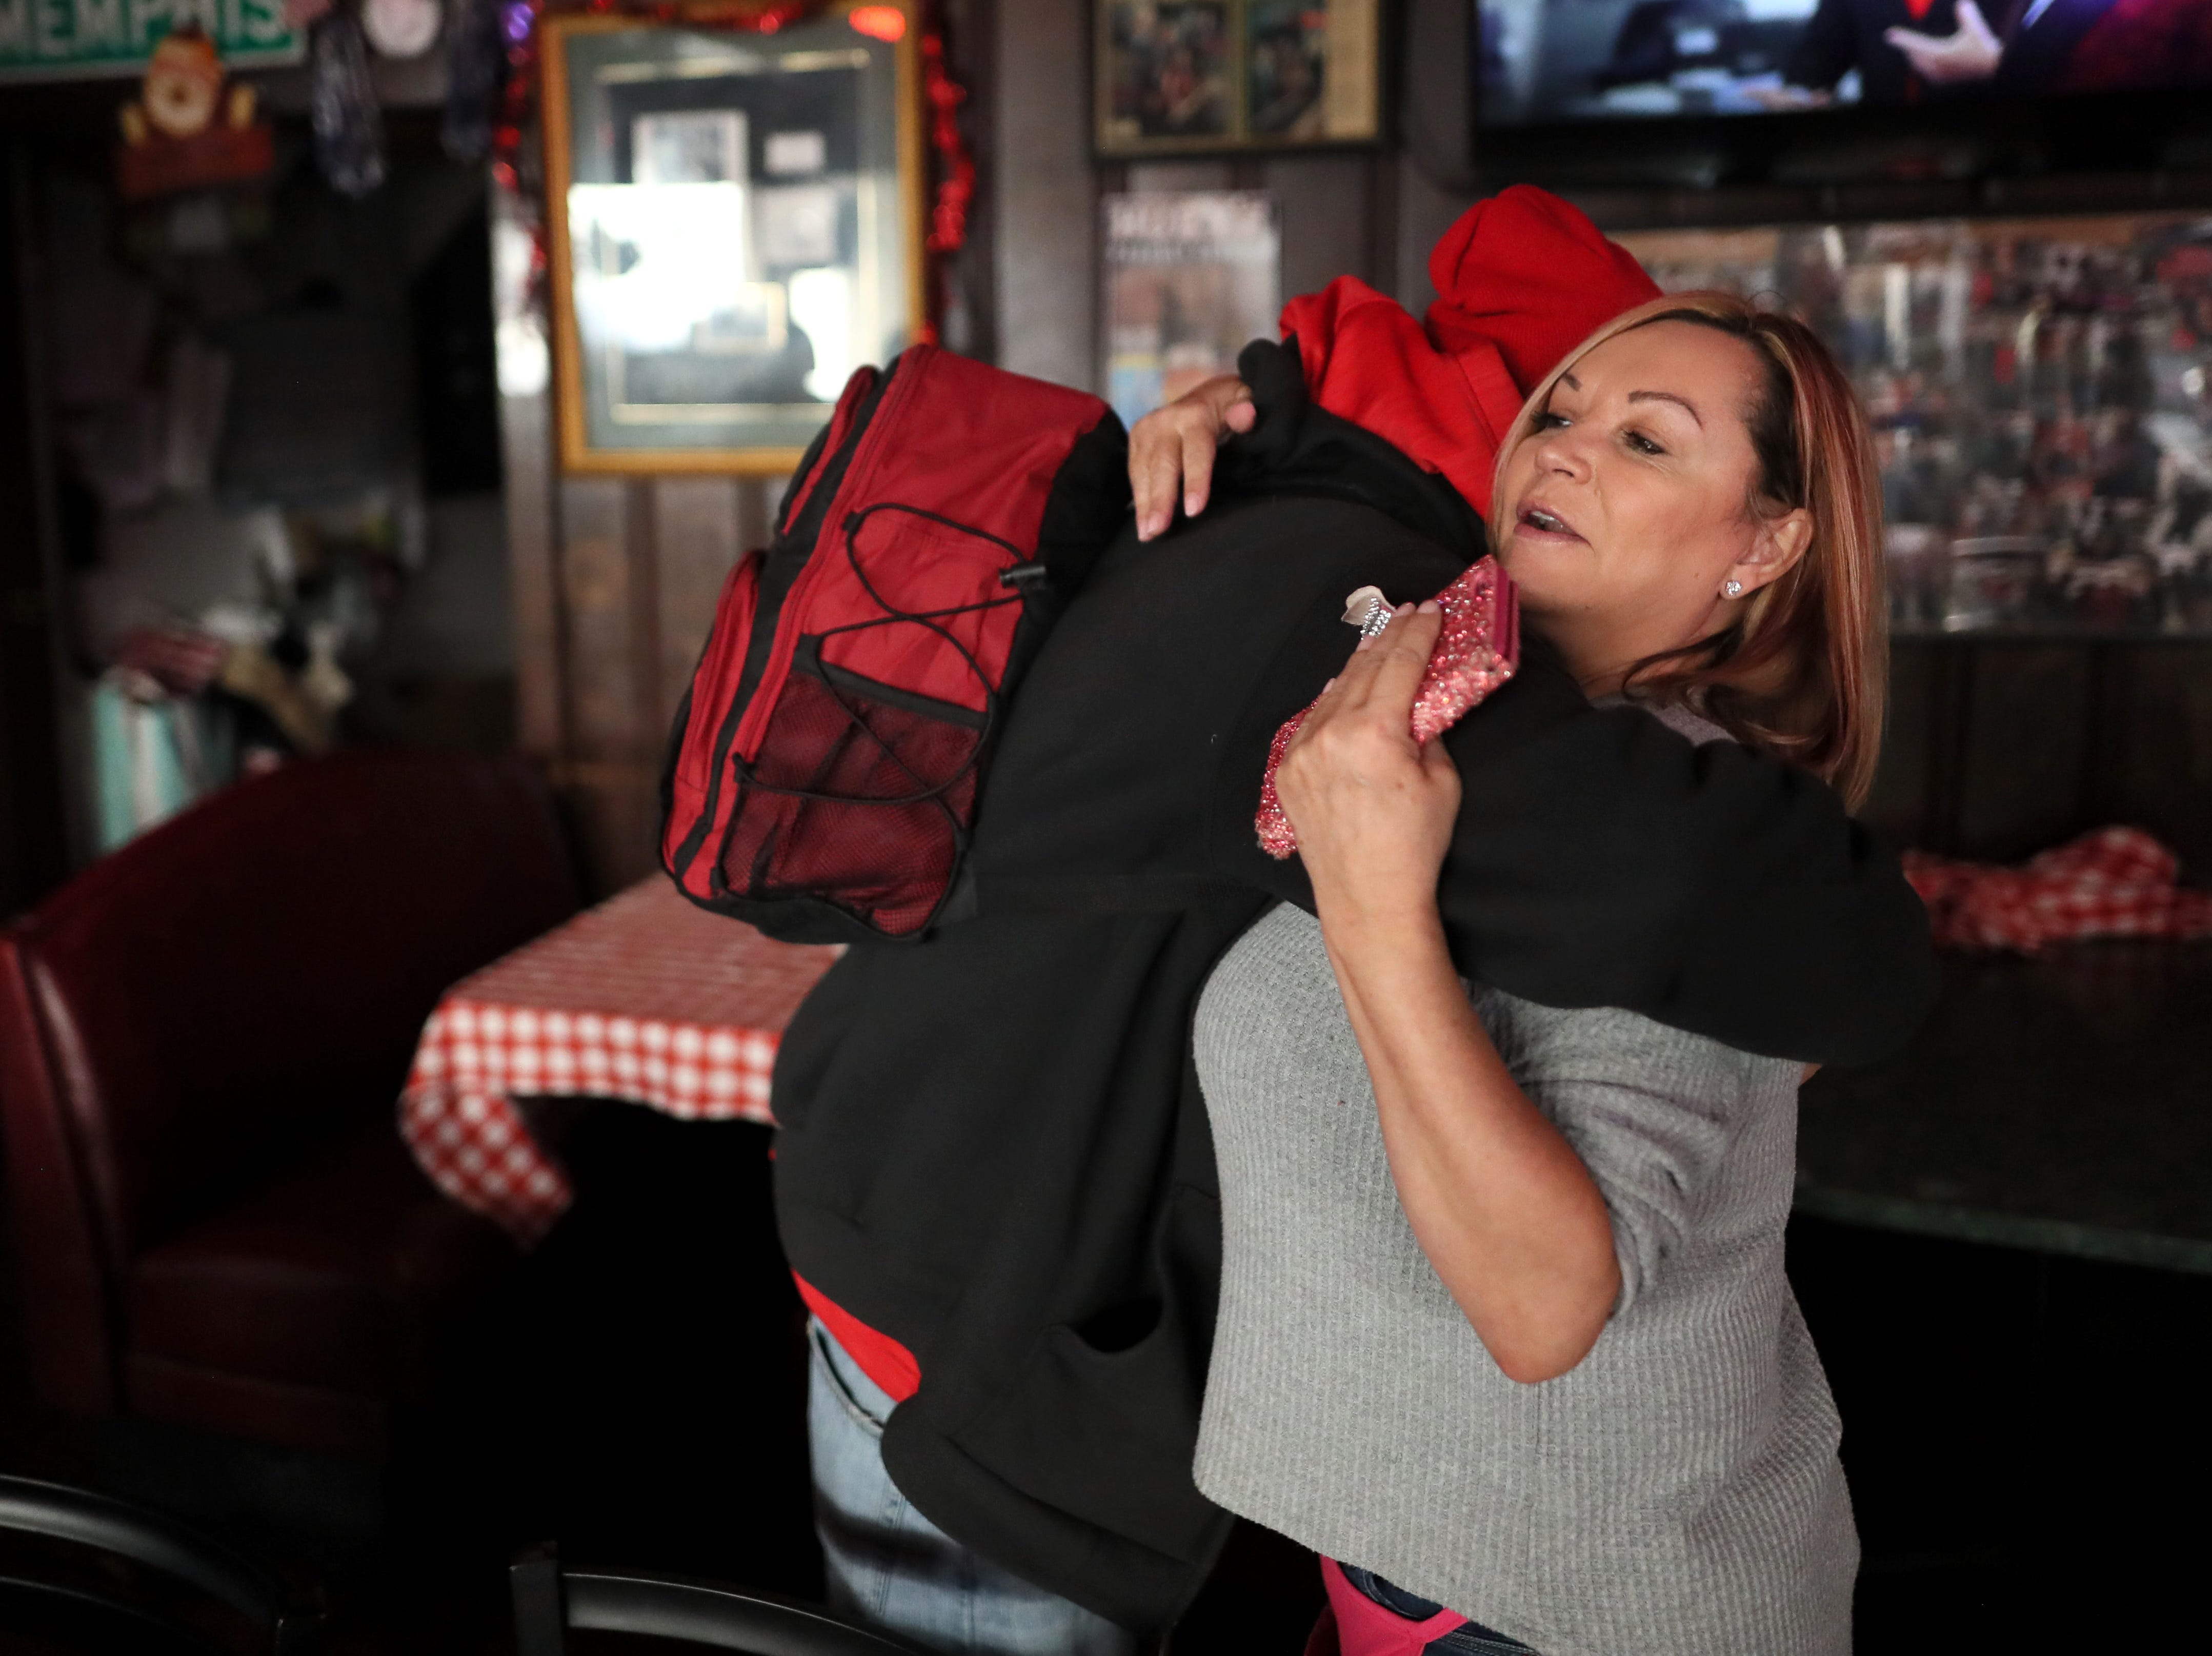 Christopher Freen hugs volunteer Sarah Nickell as she helps to serve free meals and hand out warm clothing at the Huey's downtown restaurant on Christmas Day Tuesday, Dec. 25, 2018.